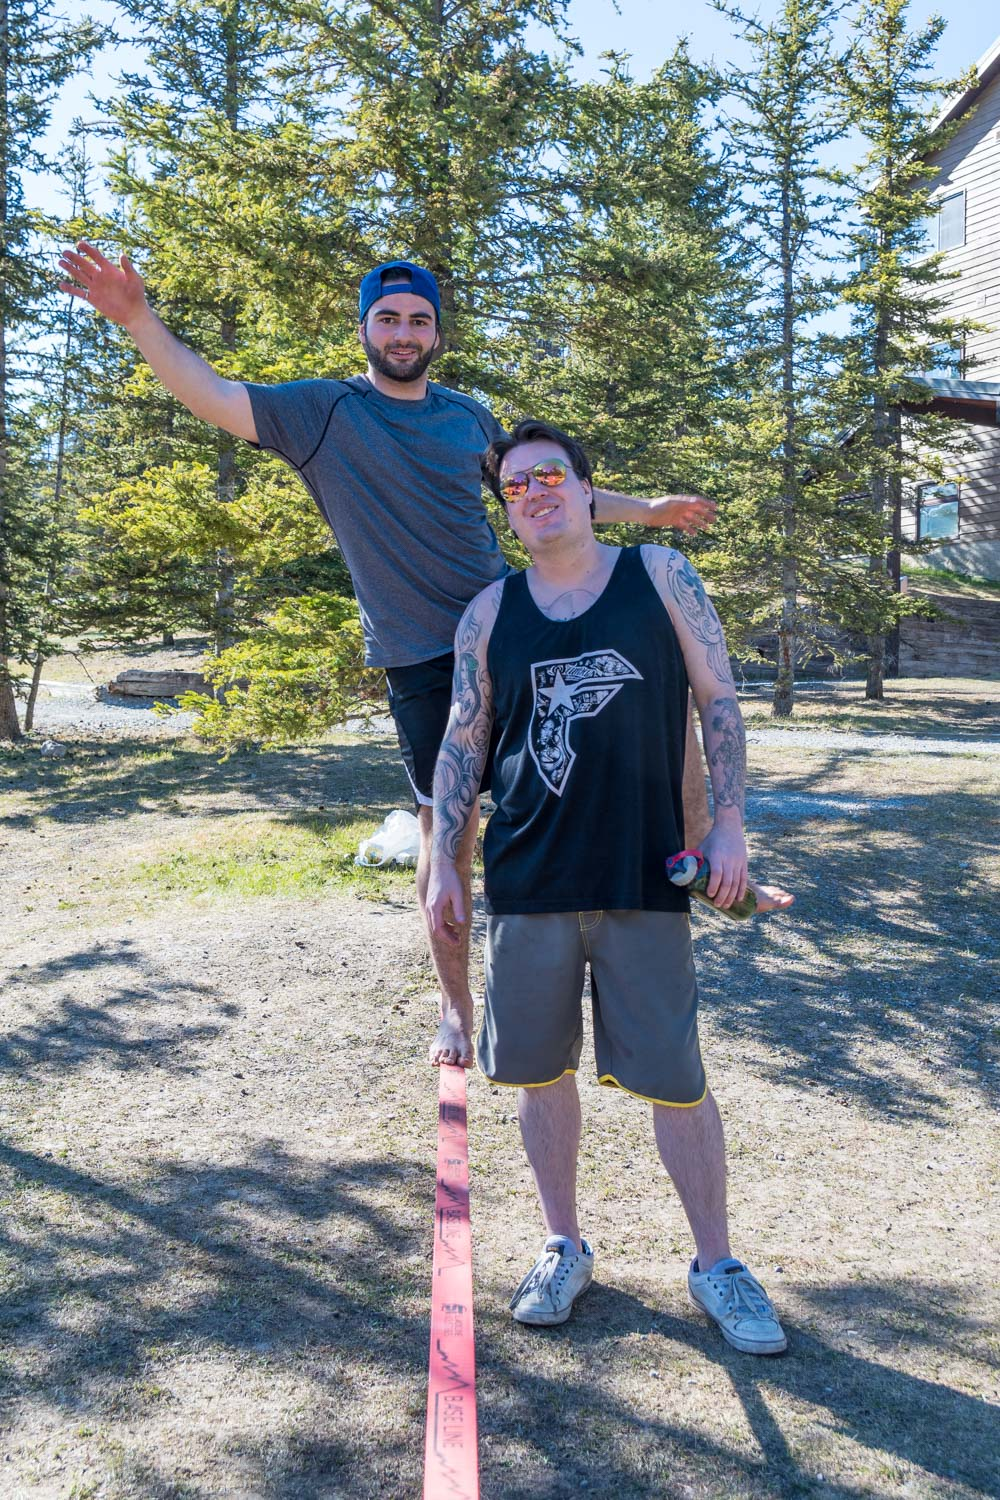 The slack line, a great summer activity.